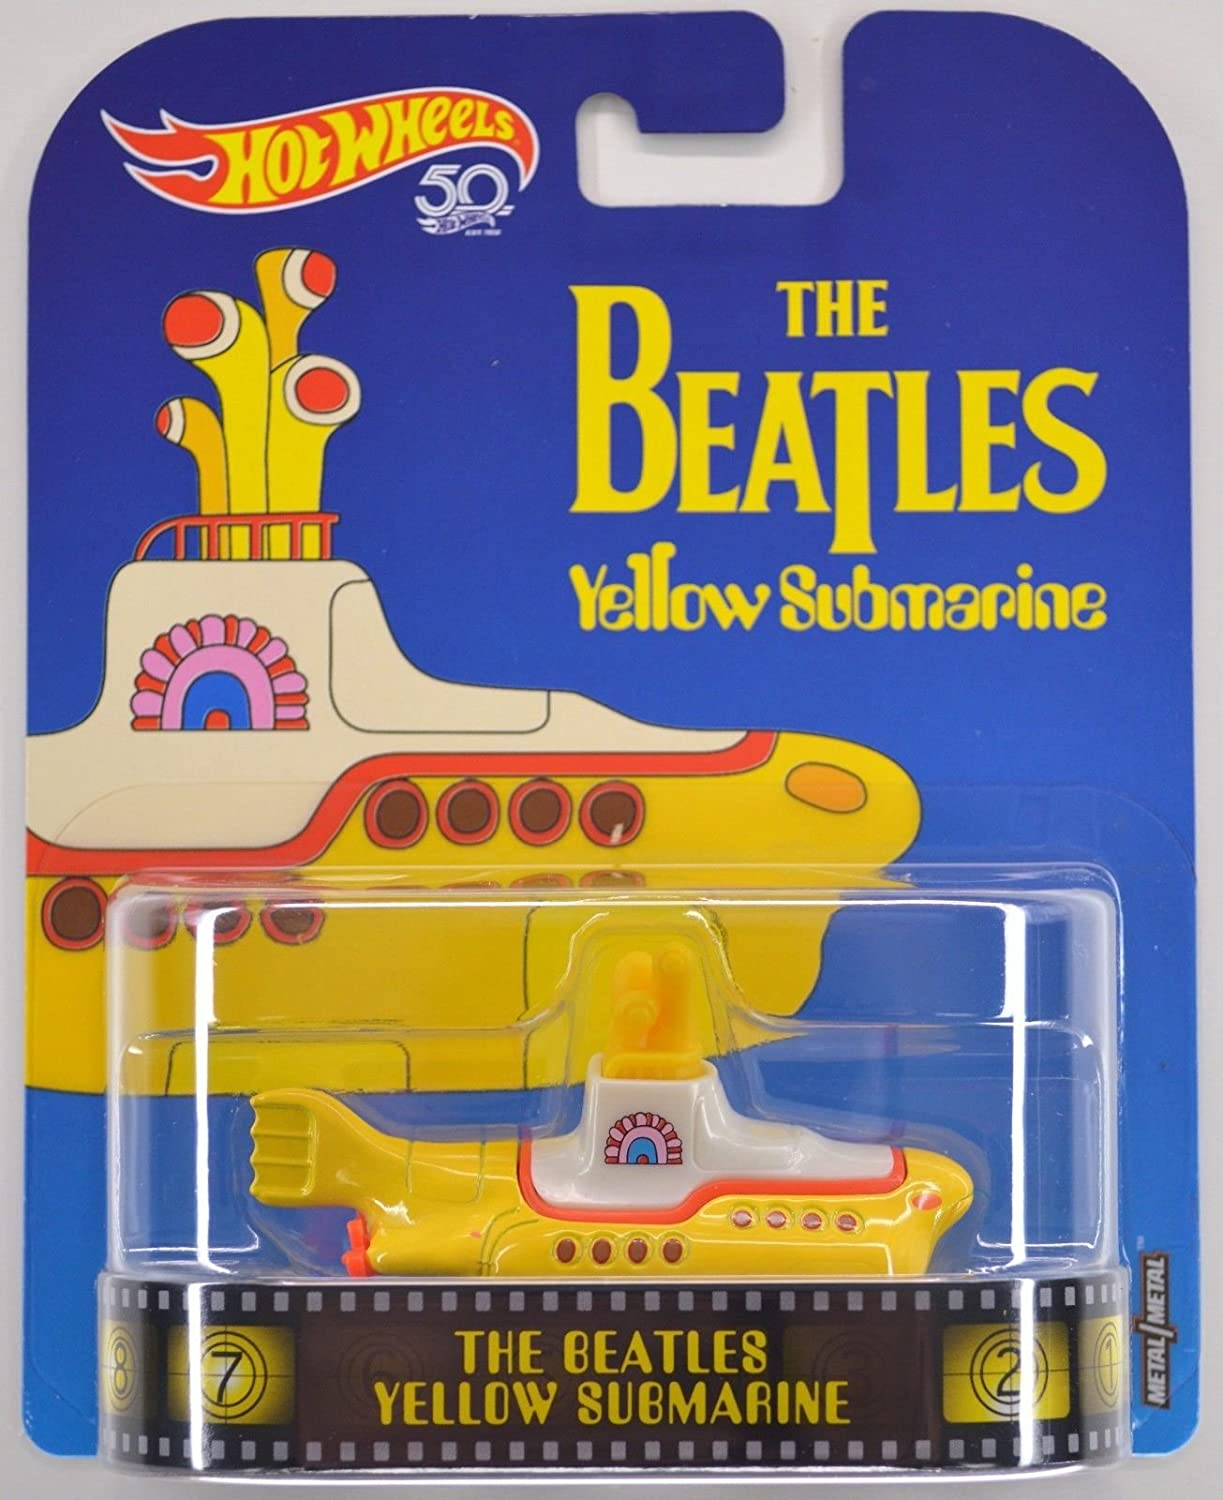 Hot Wheels Retro Entertainment Diecast Beatles Yellow Submarine Mattel FYP71